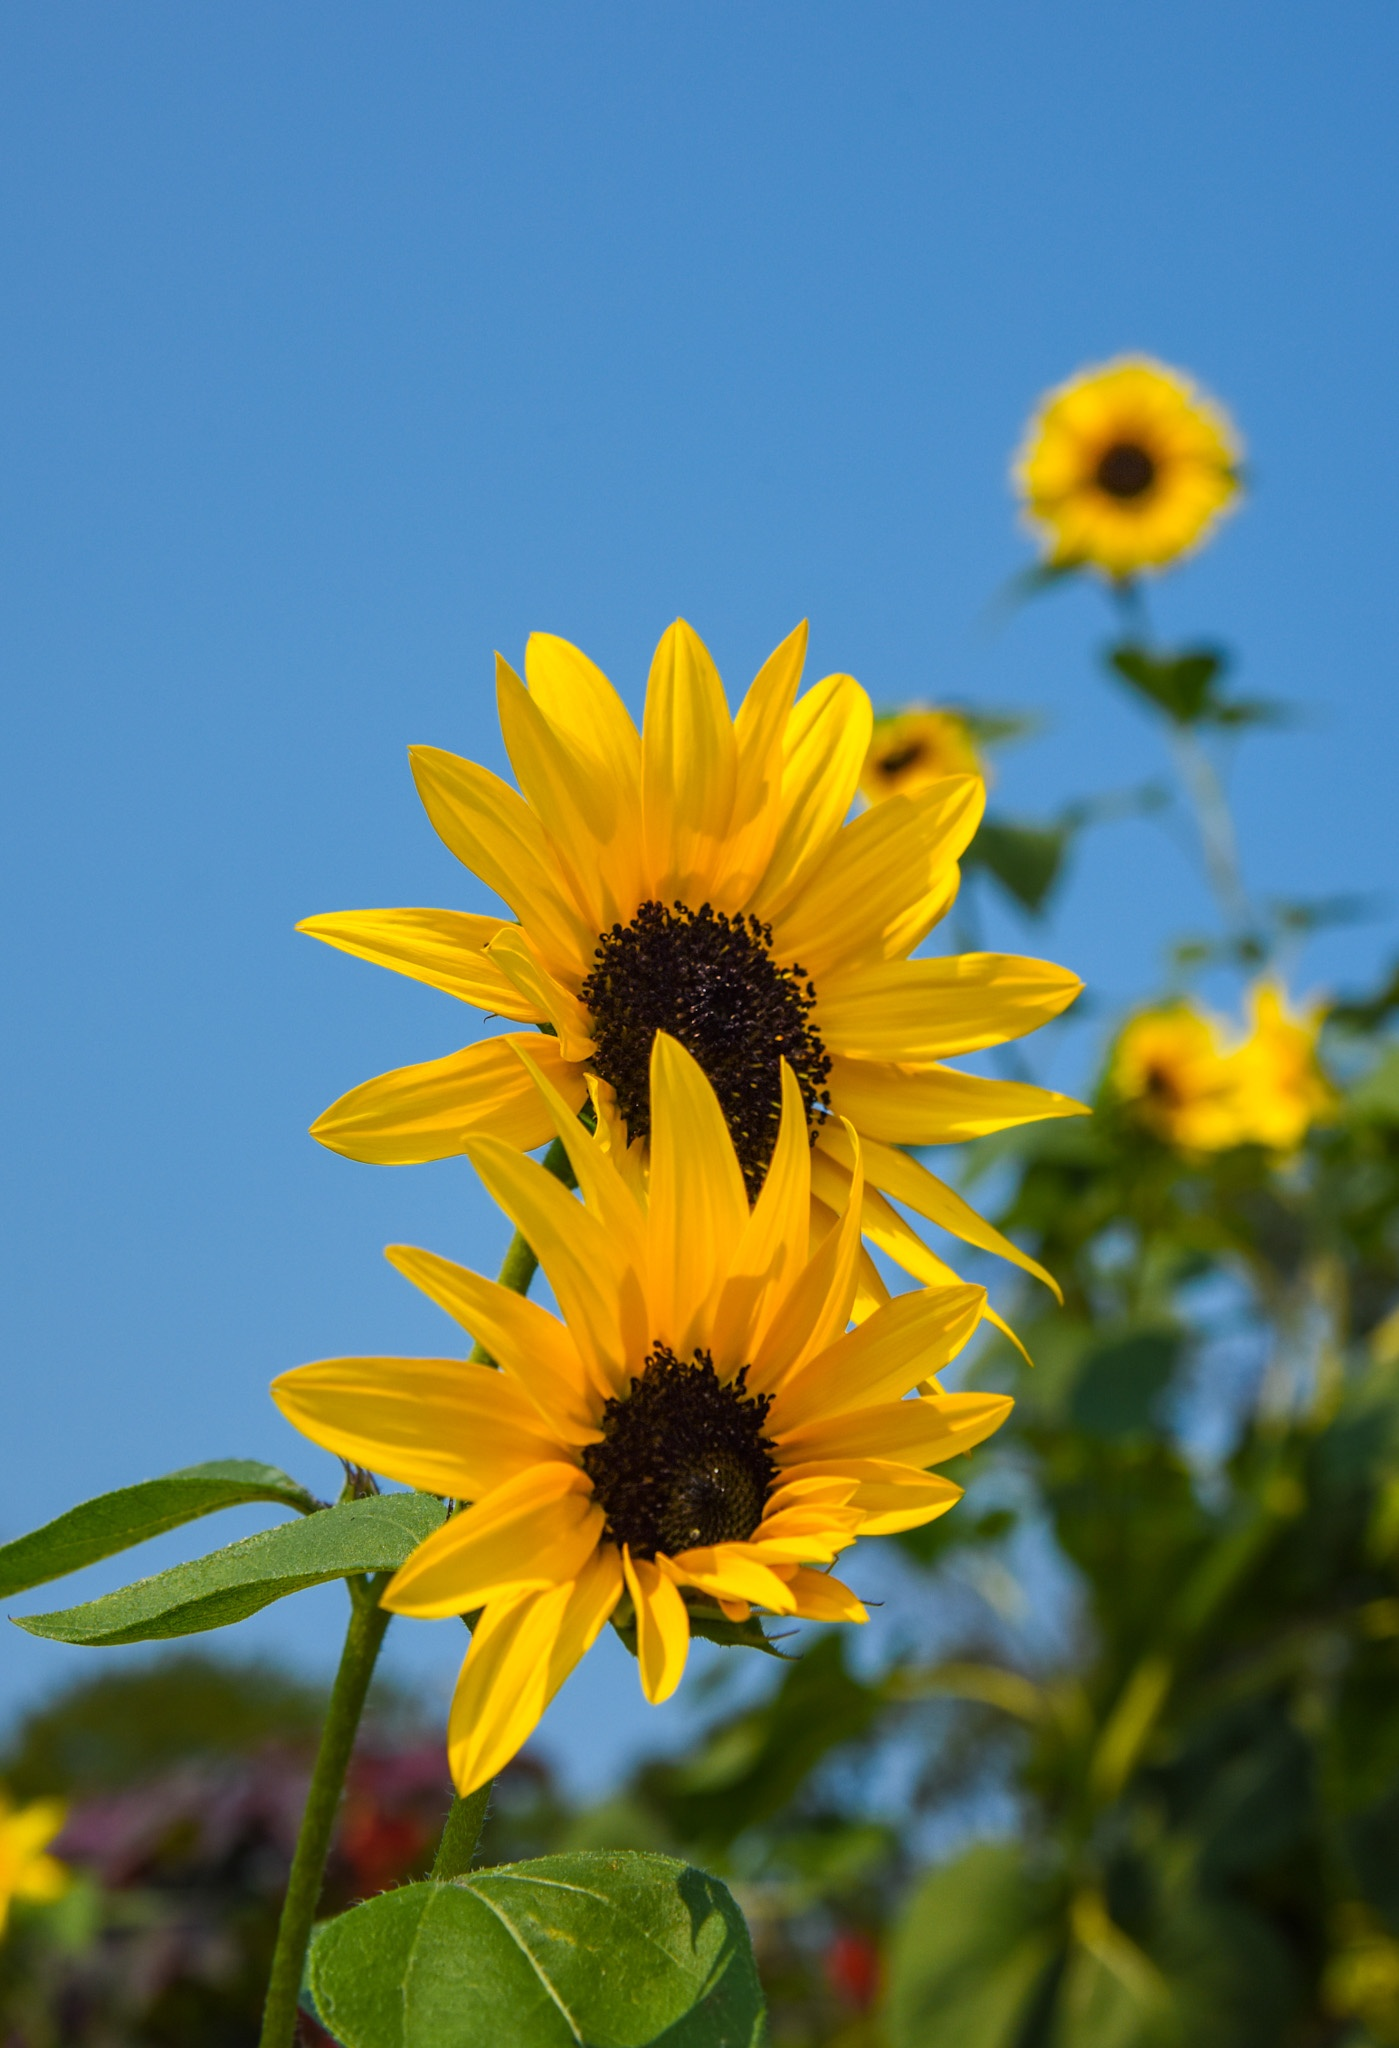 Cape May Sunflowers